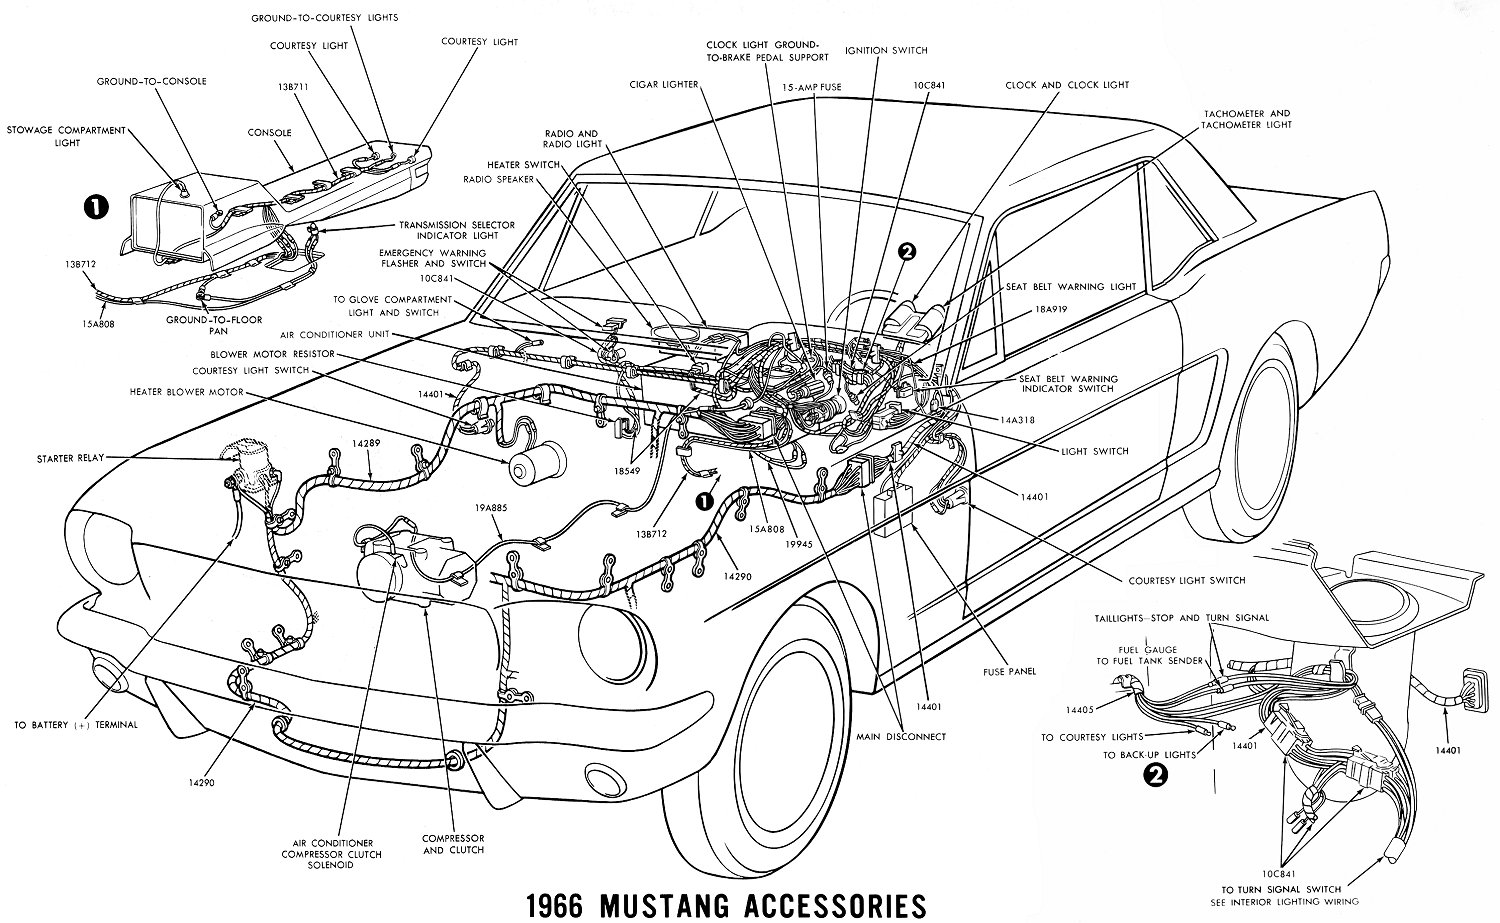 66acces 1966 mustang wiring diagrams average joe restoration lionel accessories wiring diagrams at bayanpartner.co